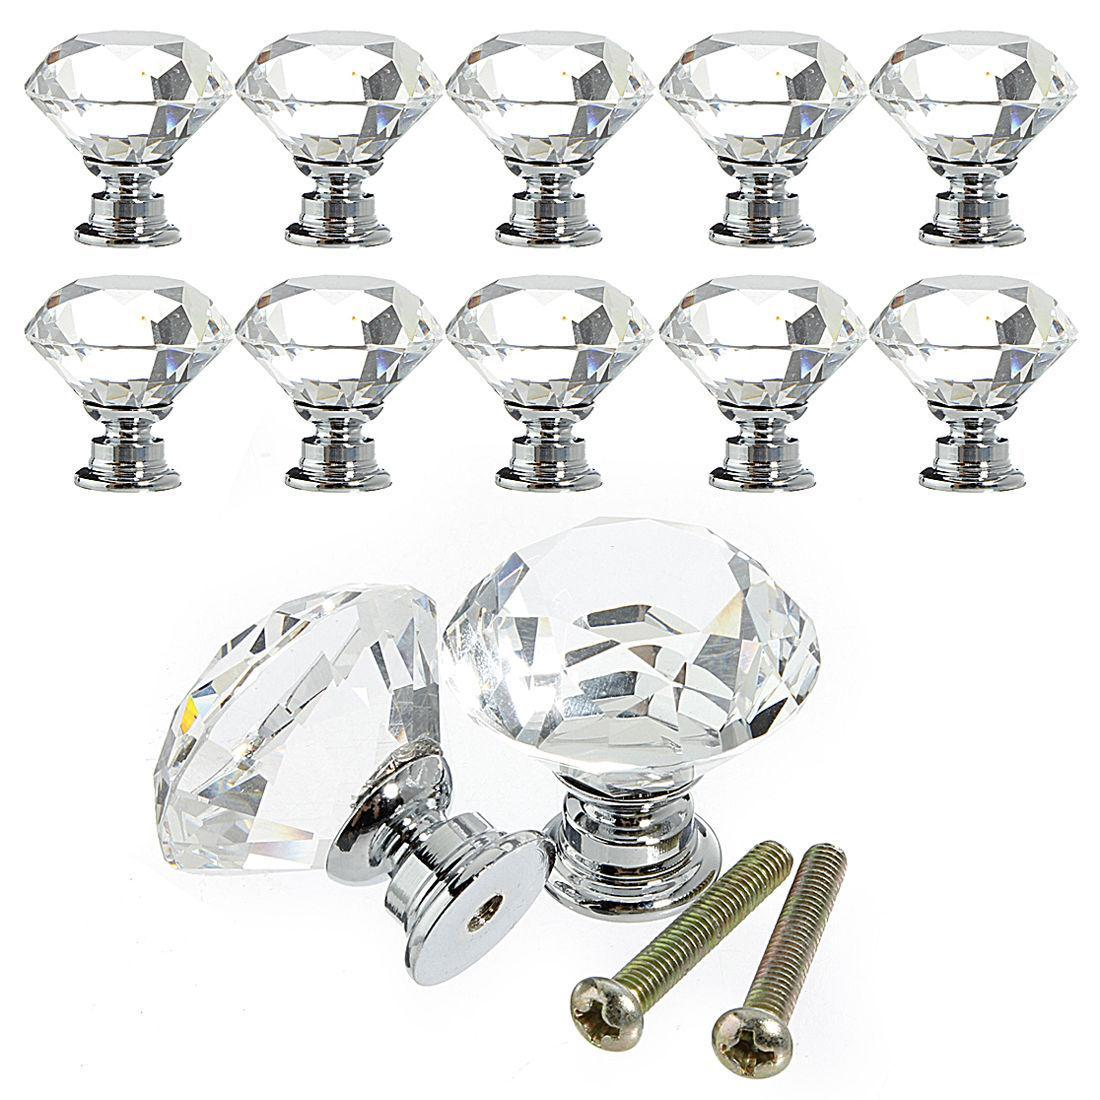 30mm Diamond Crystal  Clear Diamond Crystal Acrylic Door Drawer Cabinet Screw Pull Handle Knob Furniture Handle  Hardware